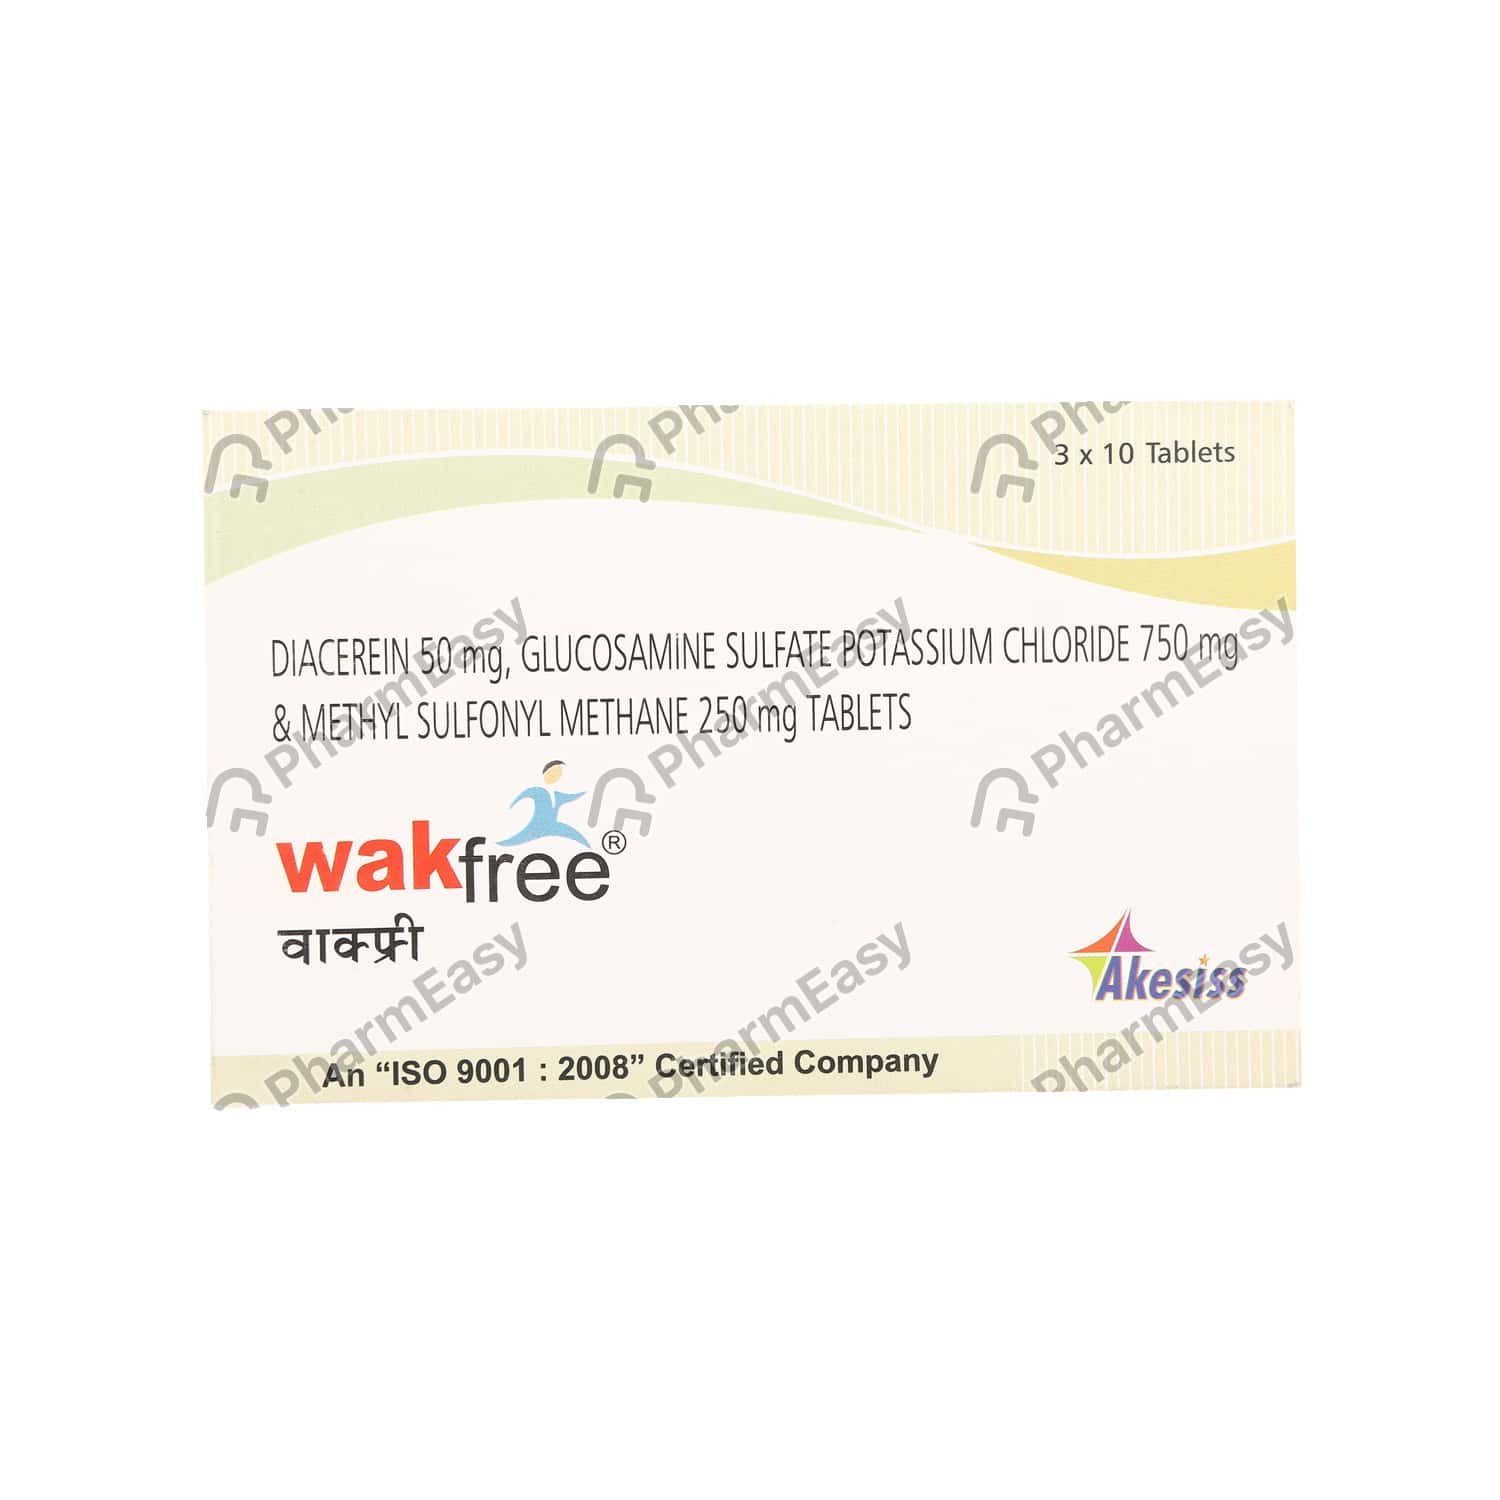 Wakfree Tablet